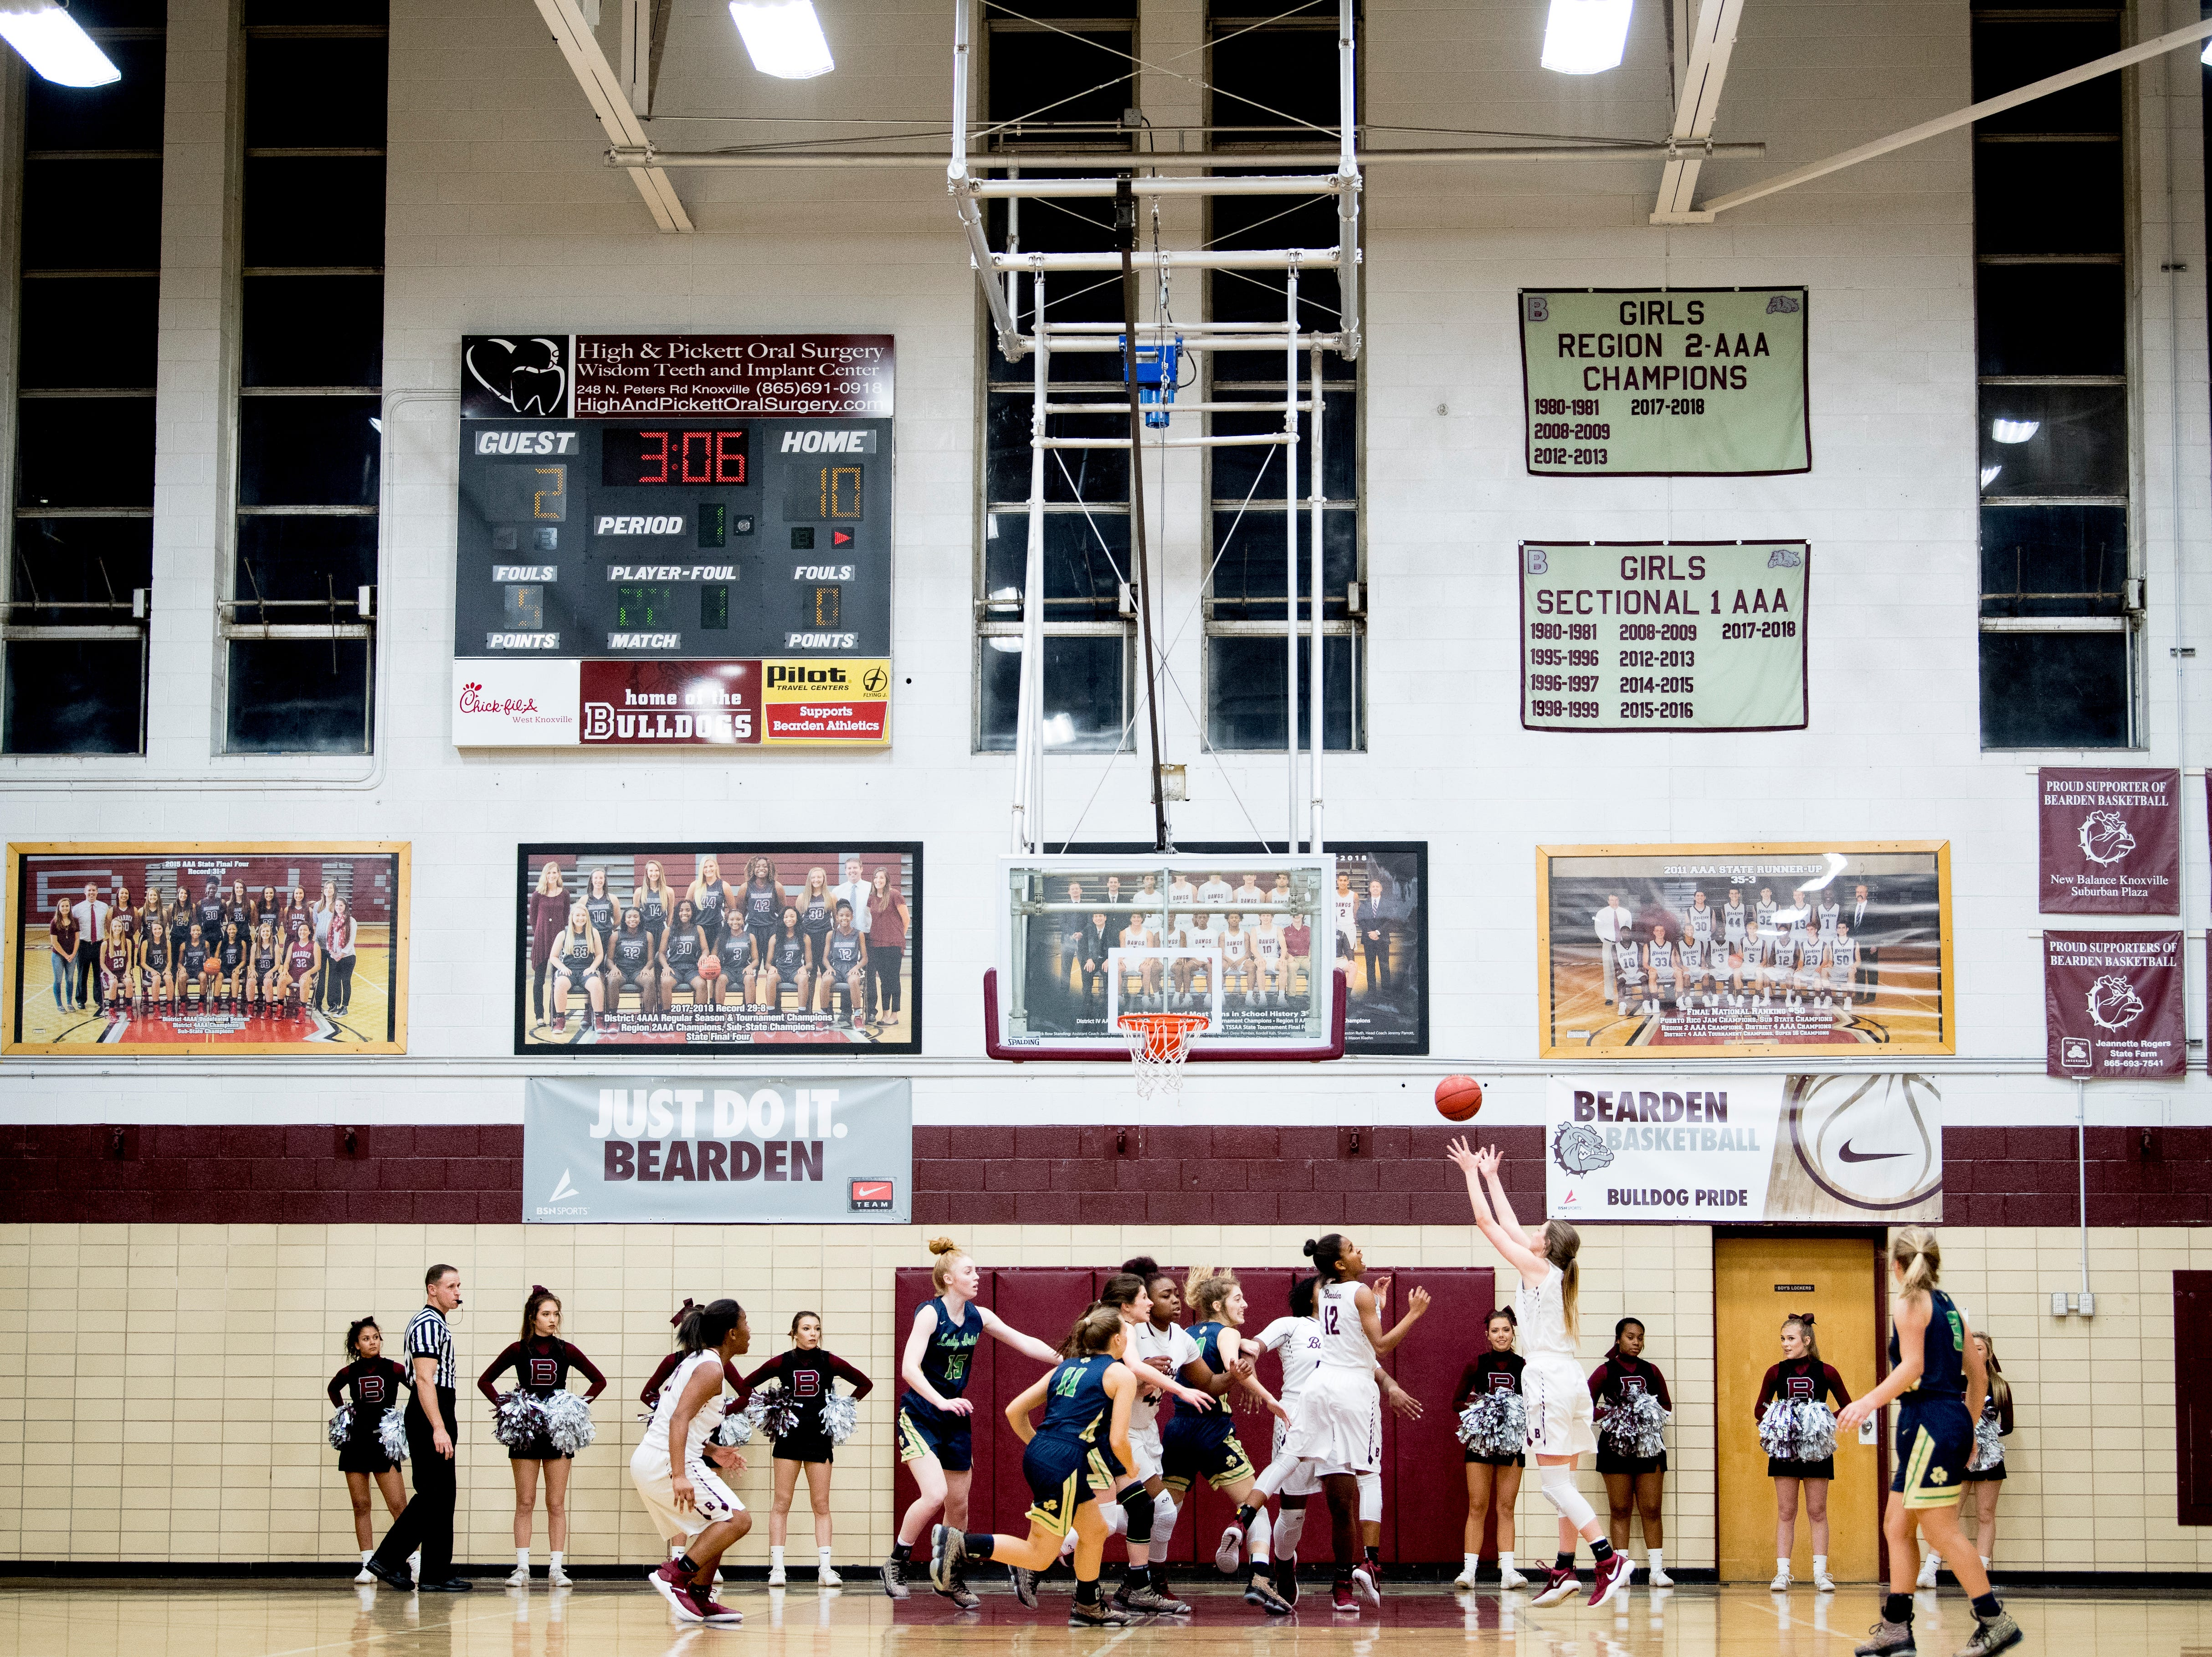 Players compete during a game between Bearden and Catholic at Bearden High School in Knoxville, Tennessee on Thursday, January 10, 2019.